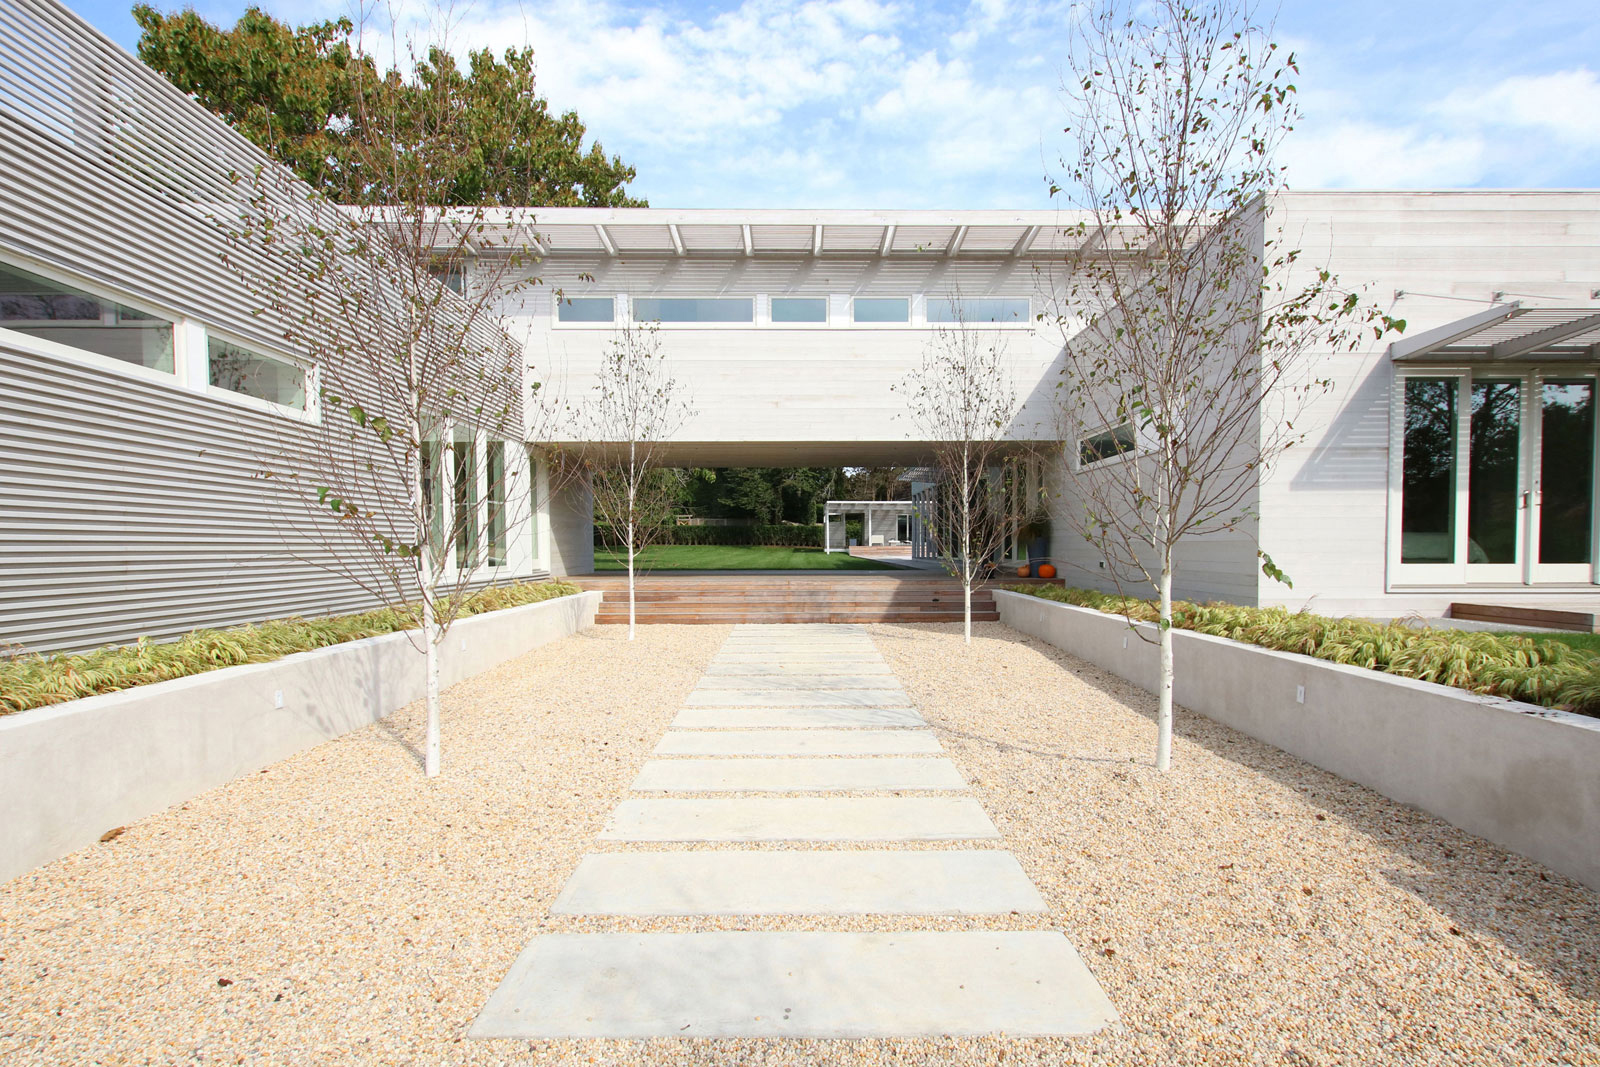 02_Bridgehampton House-entry.jpg